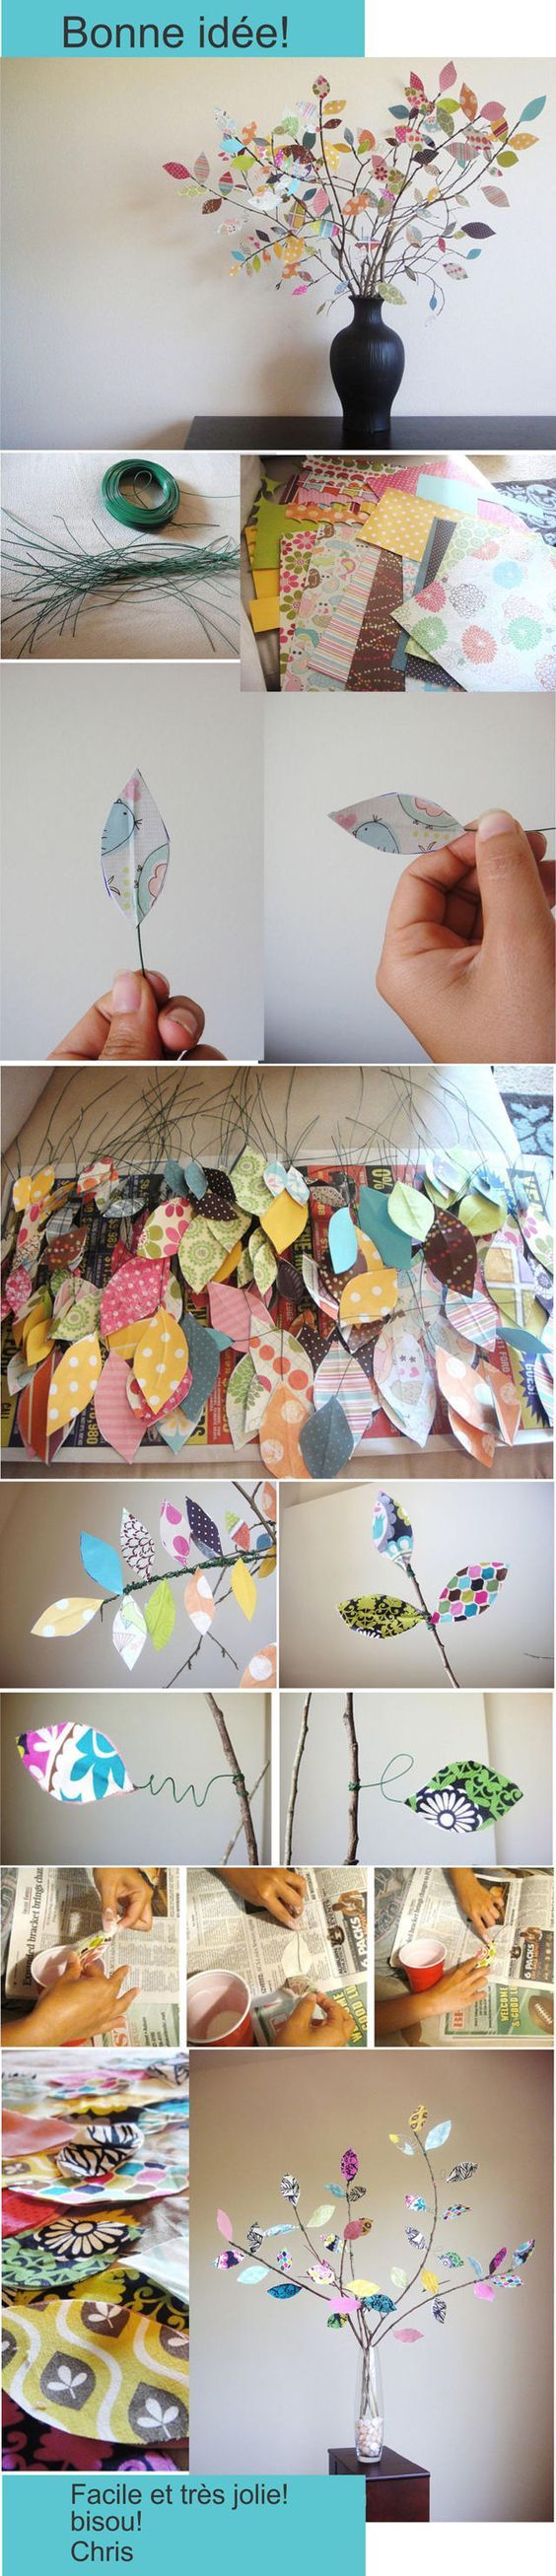 pourquoi pas un arbre de vie fait comme ça? Pretty sure I could modify this into an adorable DIY mobile